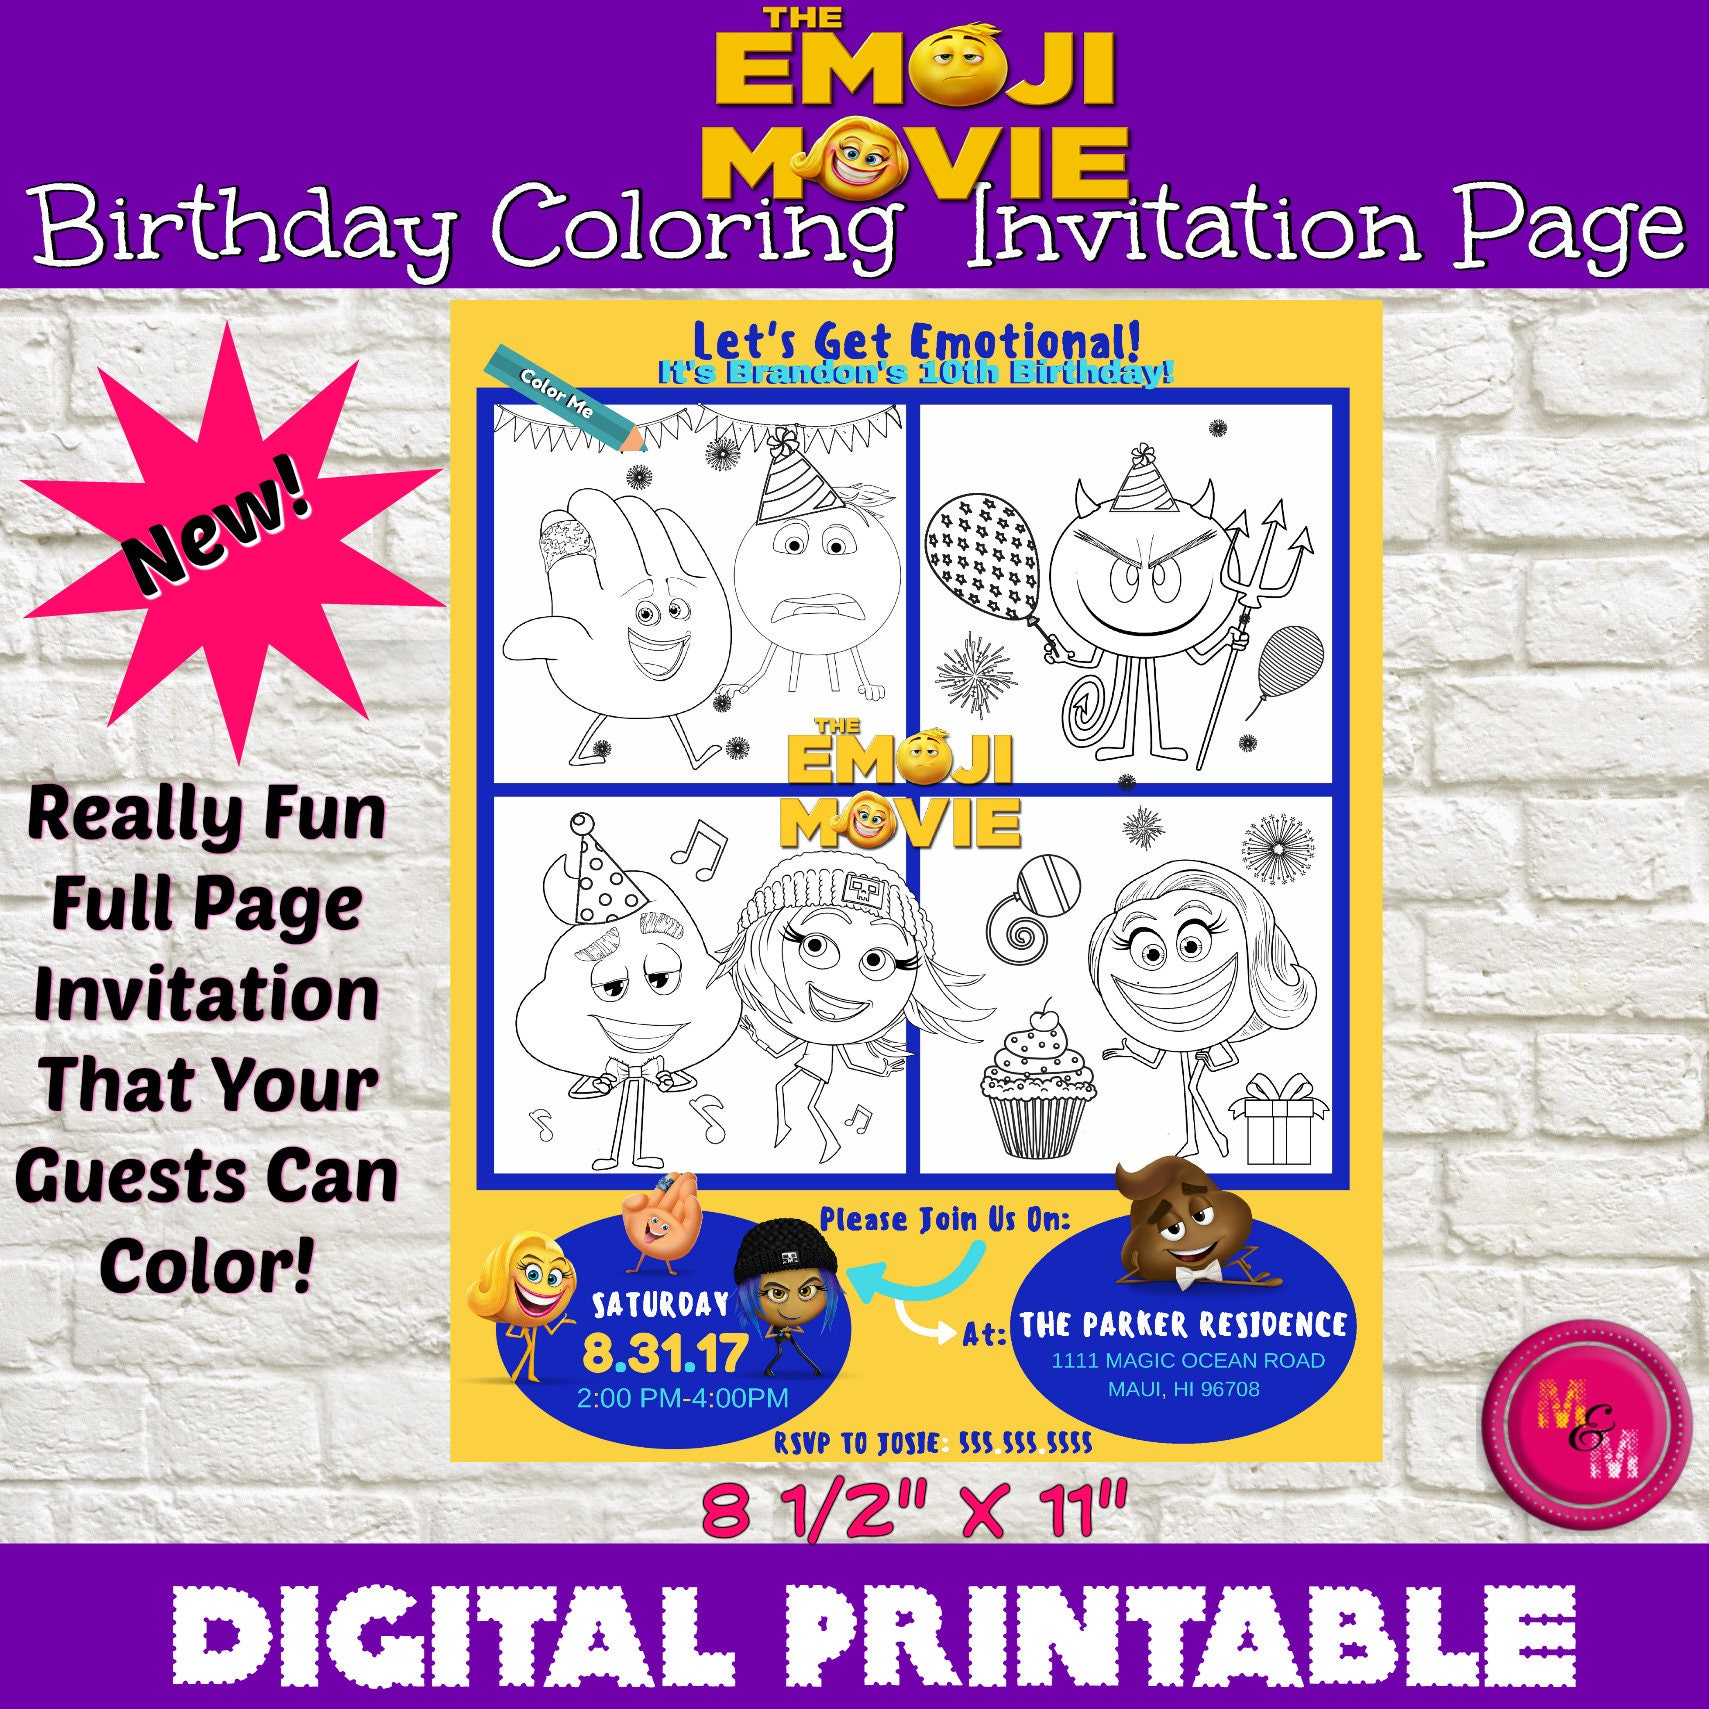 Personalized Emoji Movie Invitation Printable